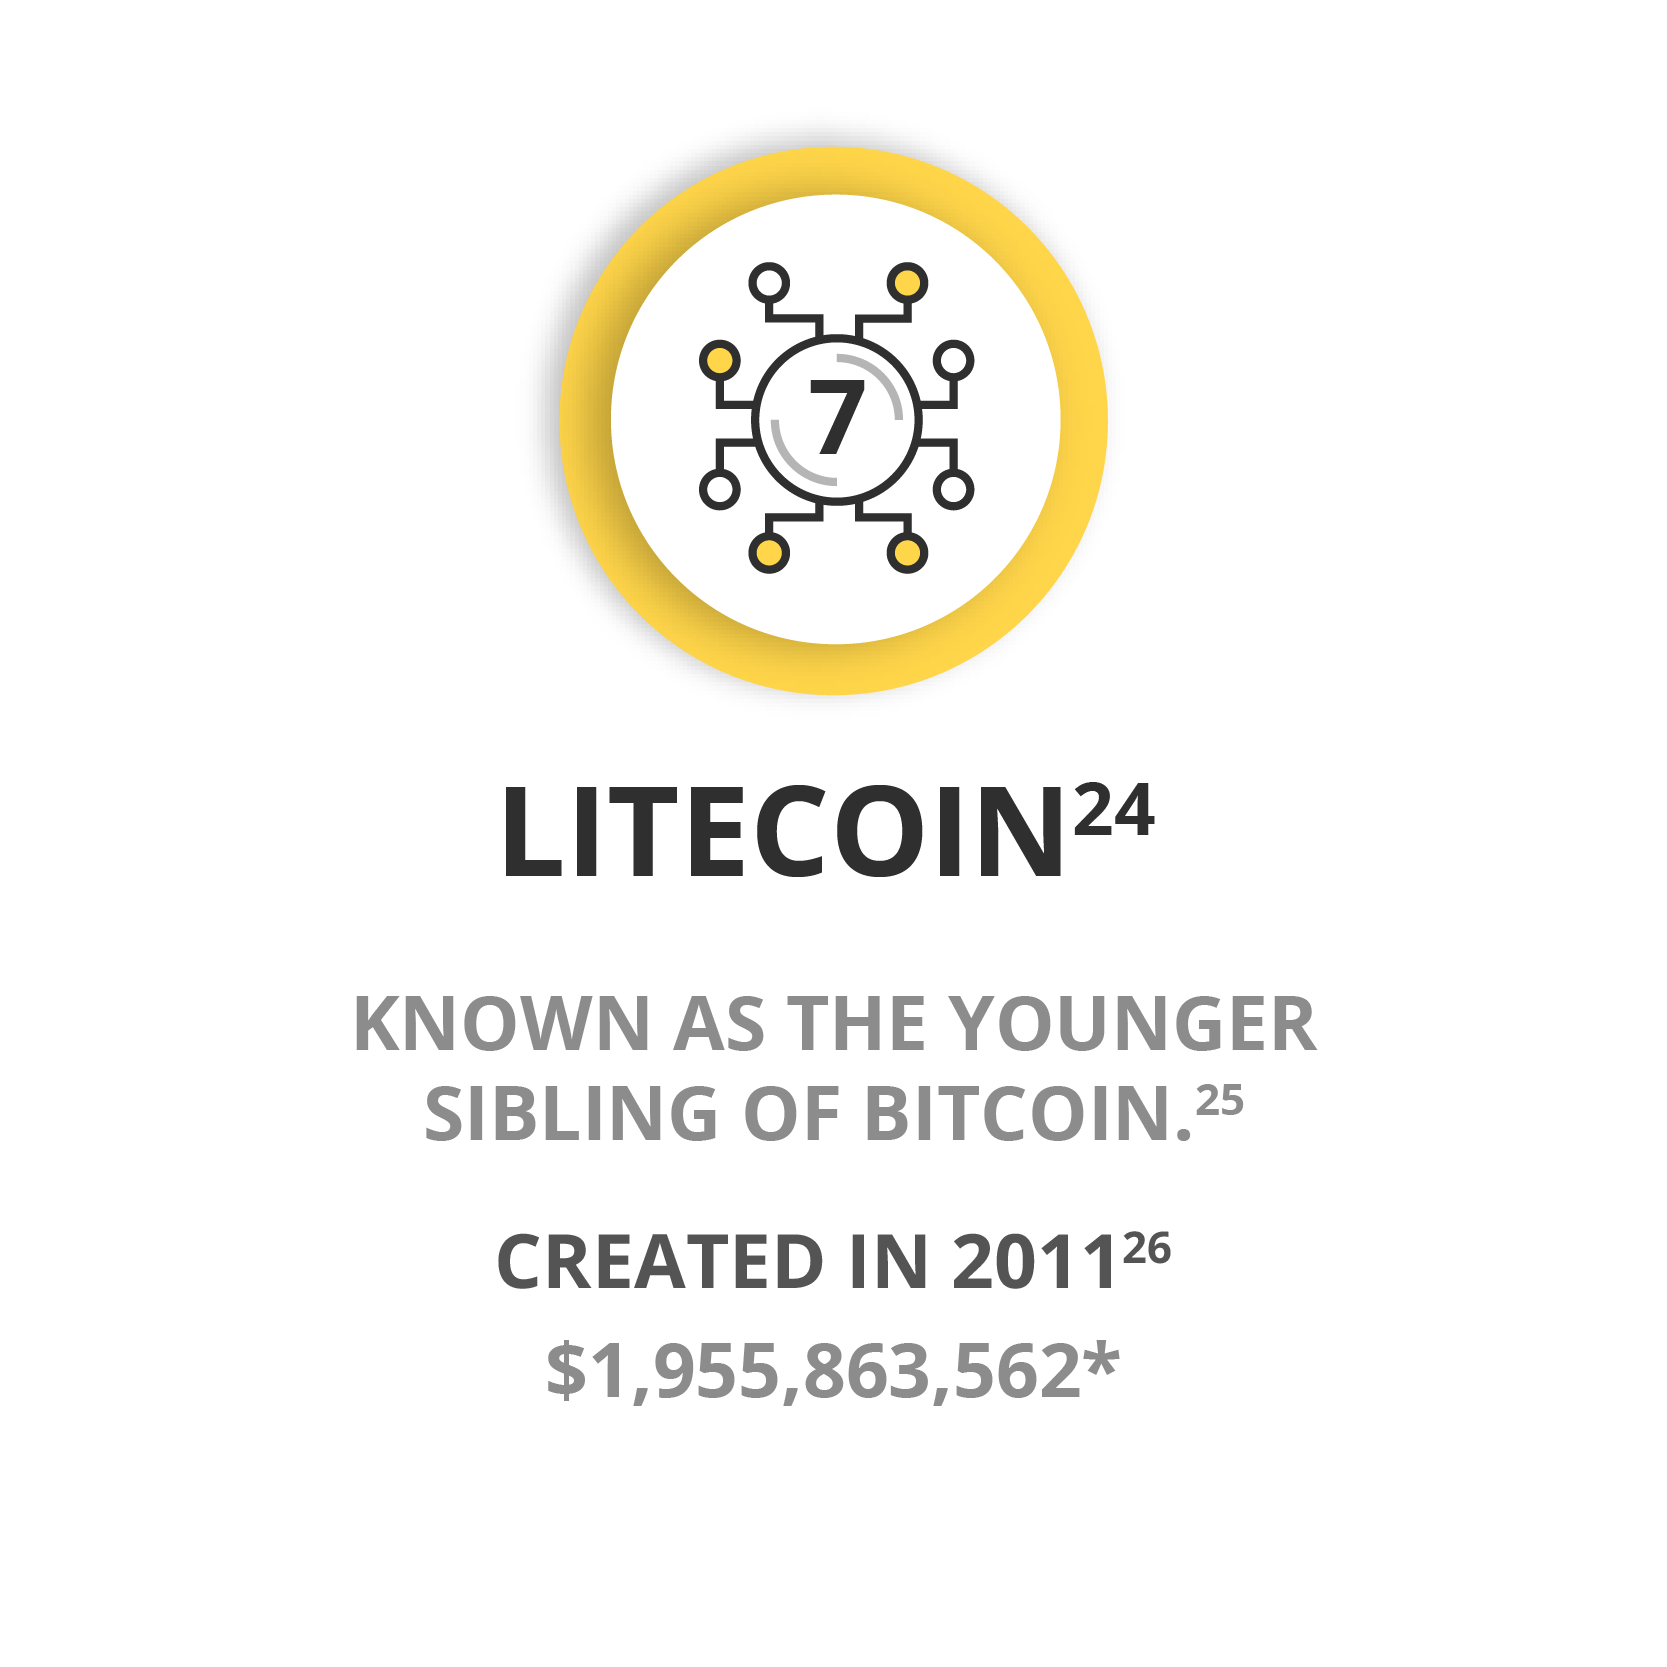 Litecoin cryptocurrency - Known as the younger sibling of Bitcoin